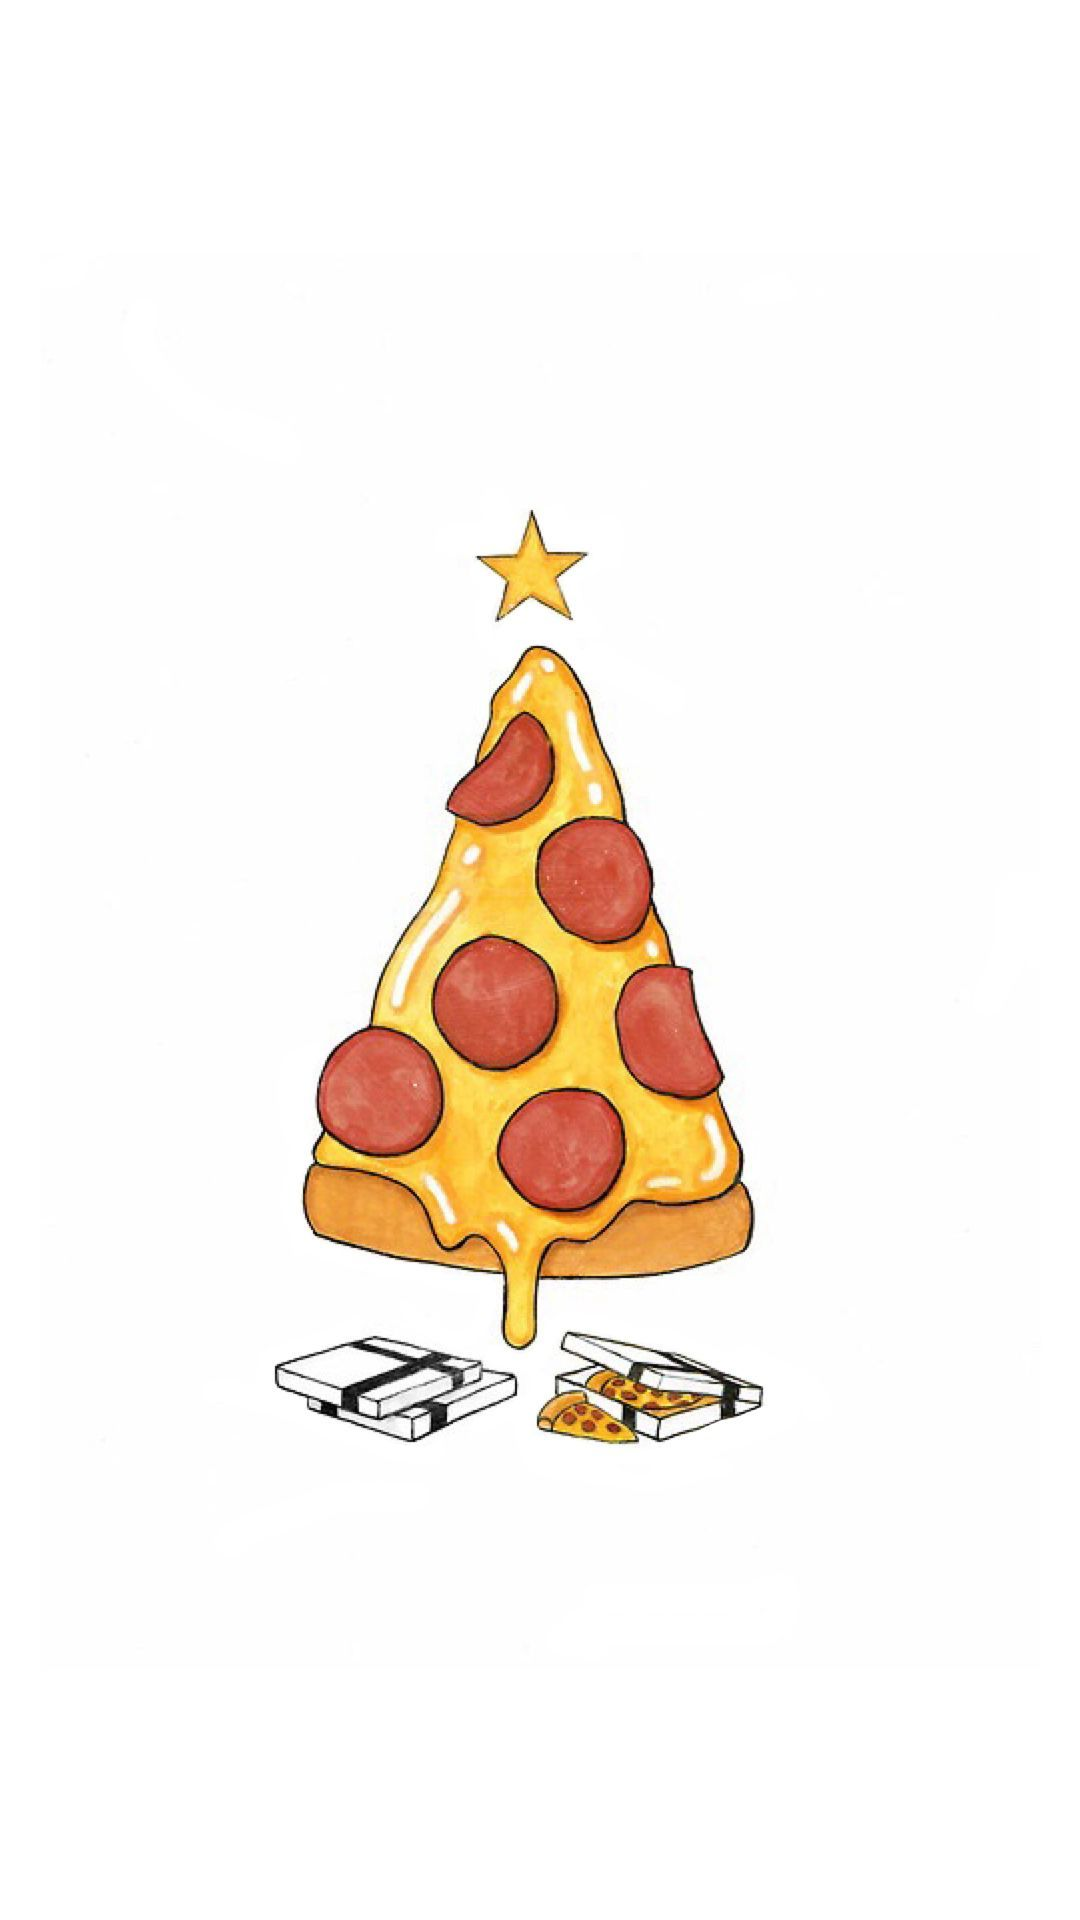 1080x1920 Pizza Christmas Tree Presents #iPhone #6 #wallpaper   iPhone 6 ...